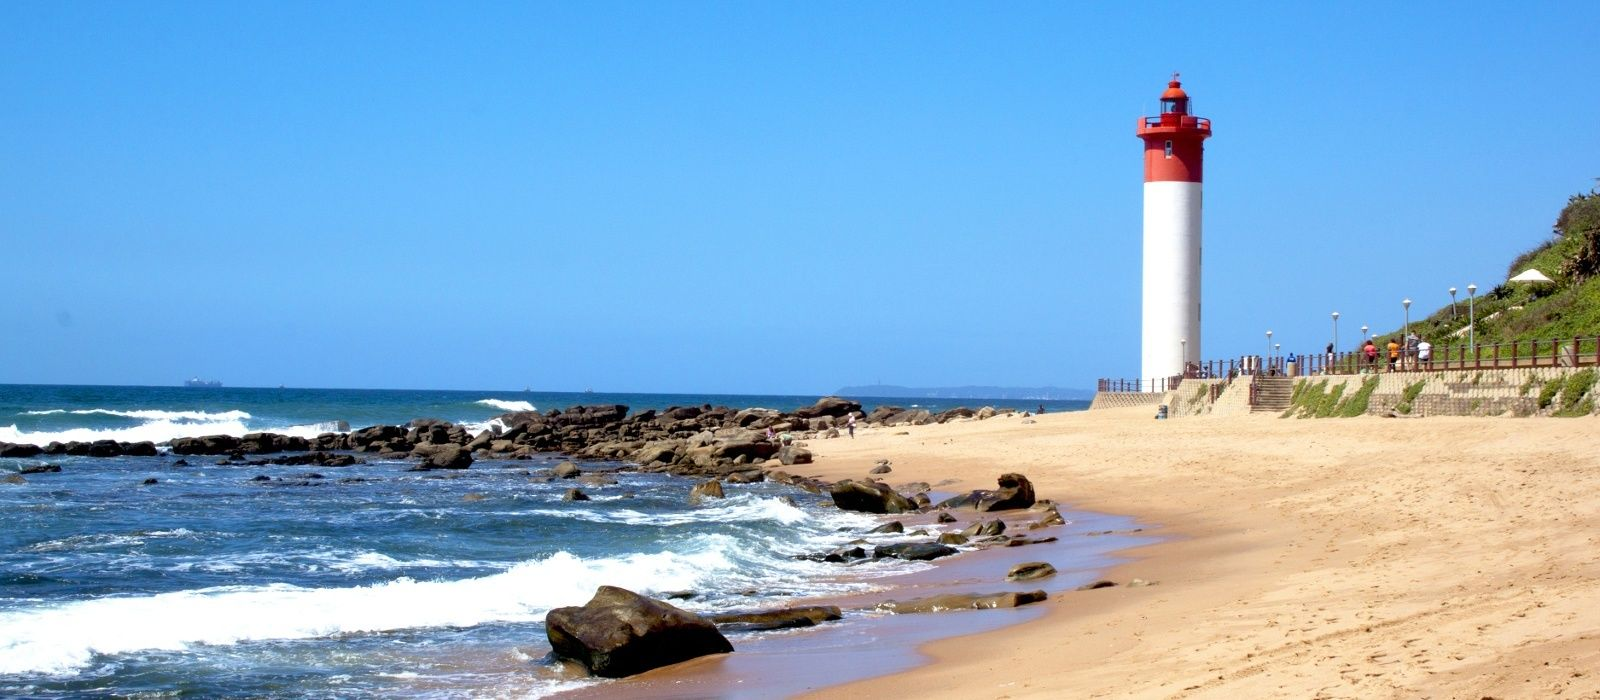 Destination Durban South Africa